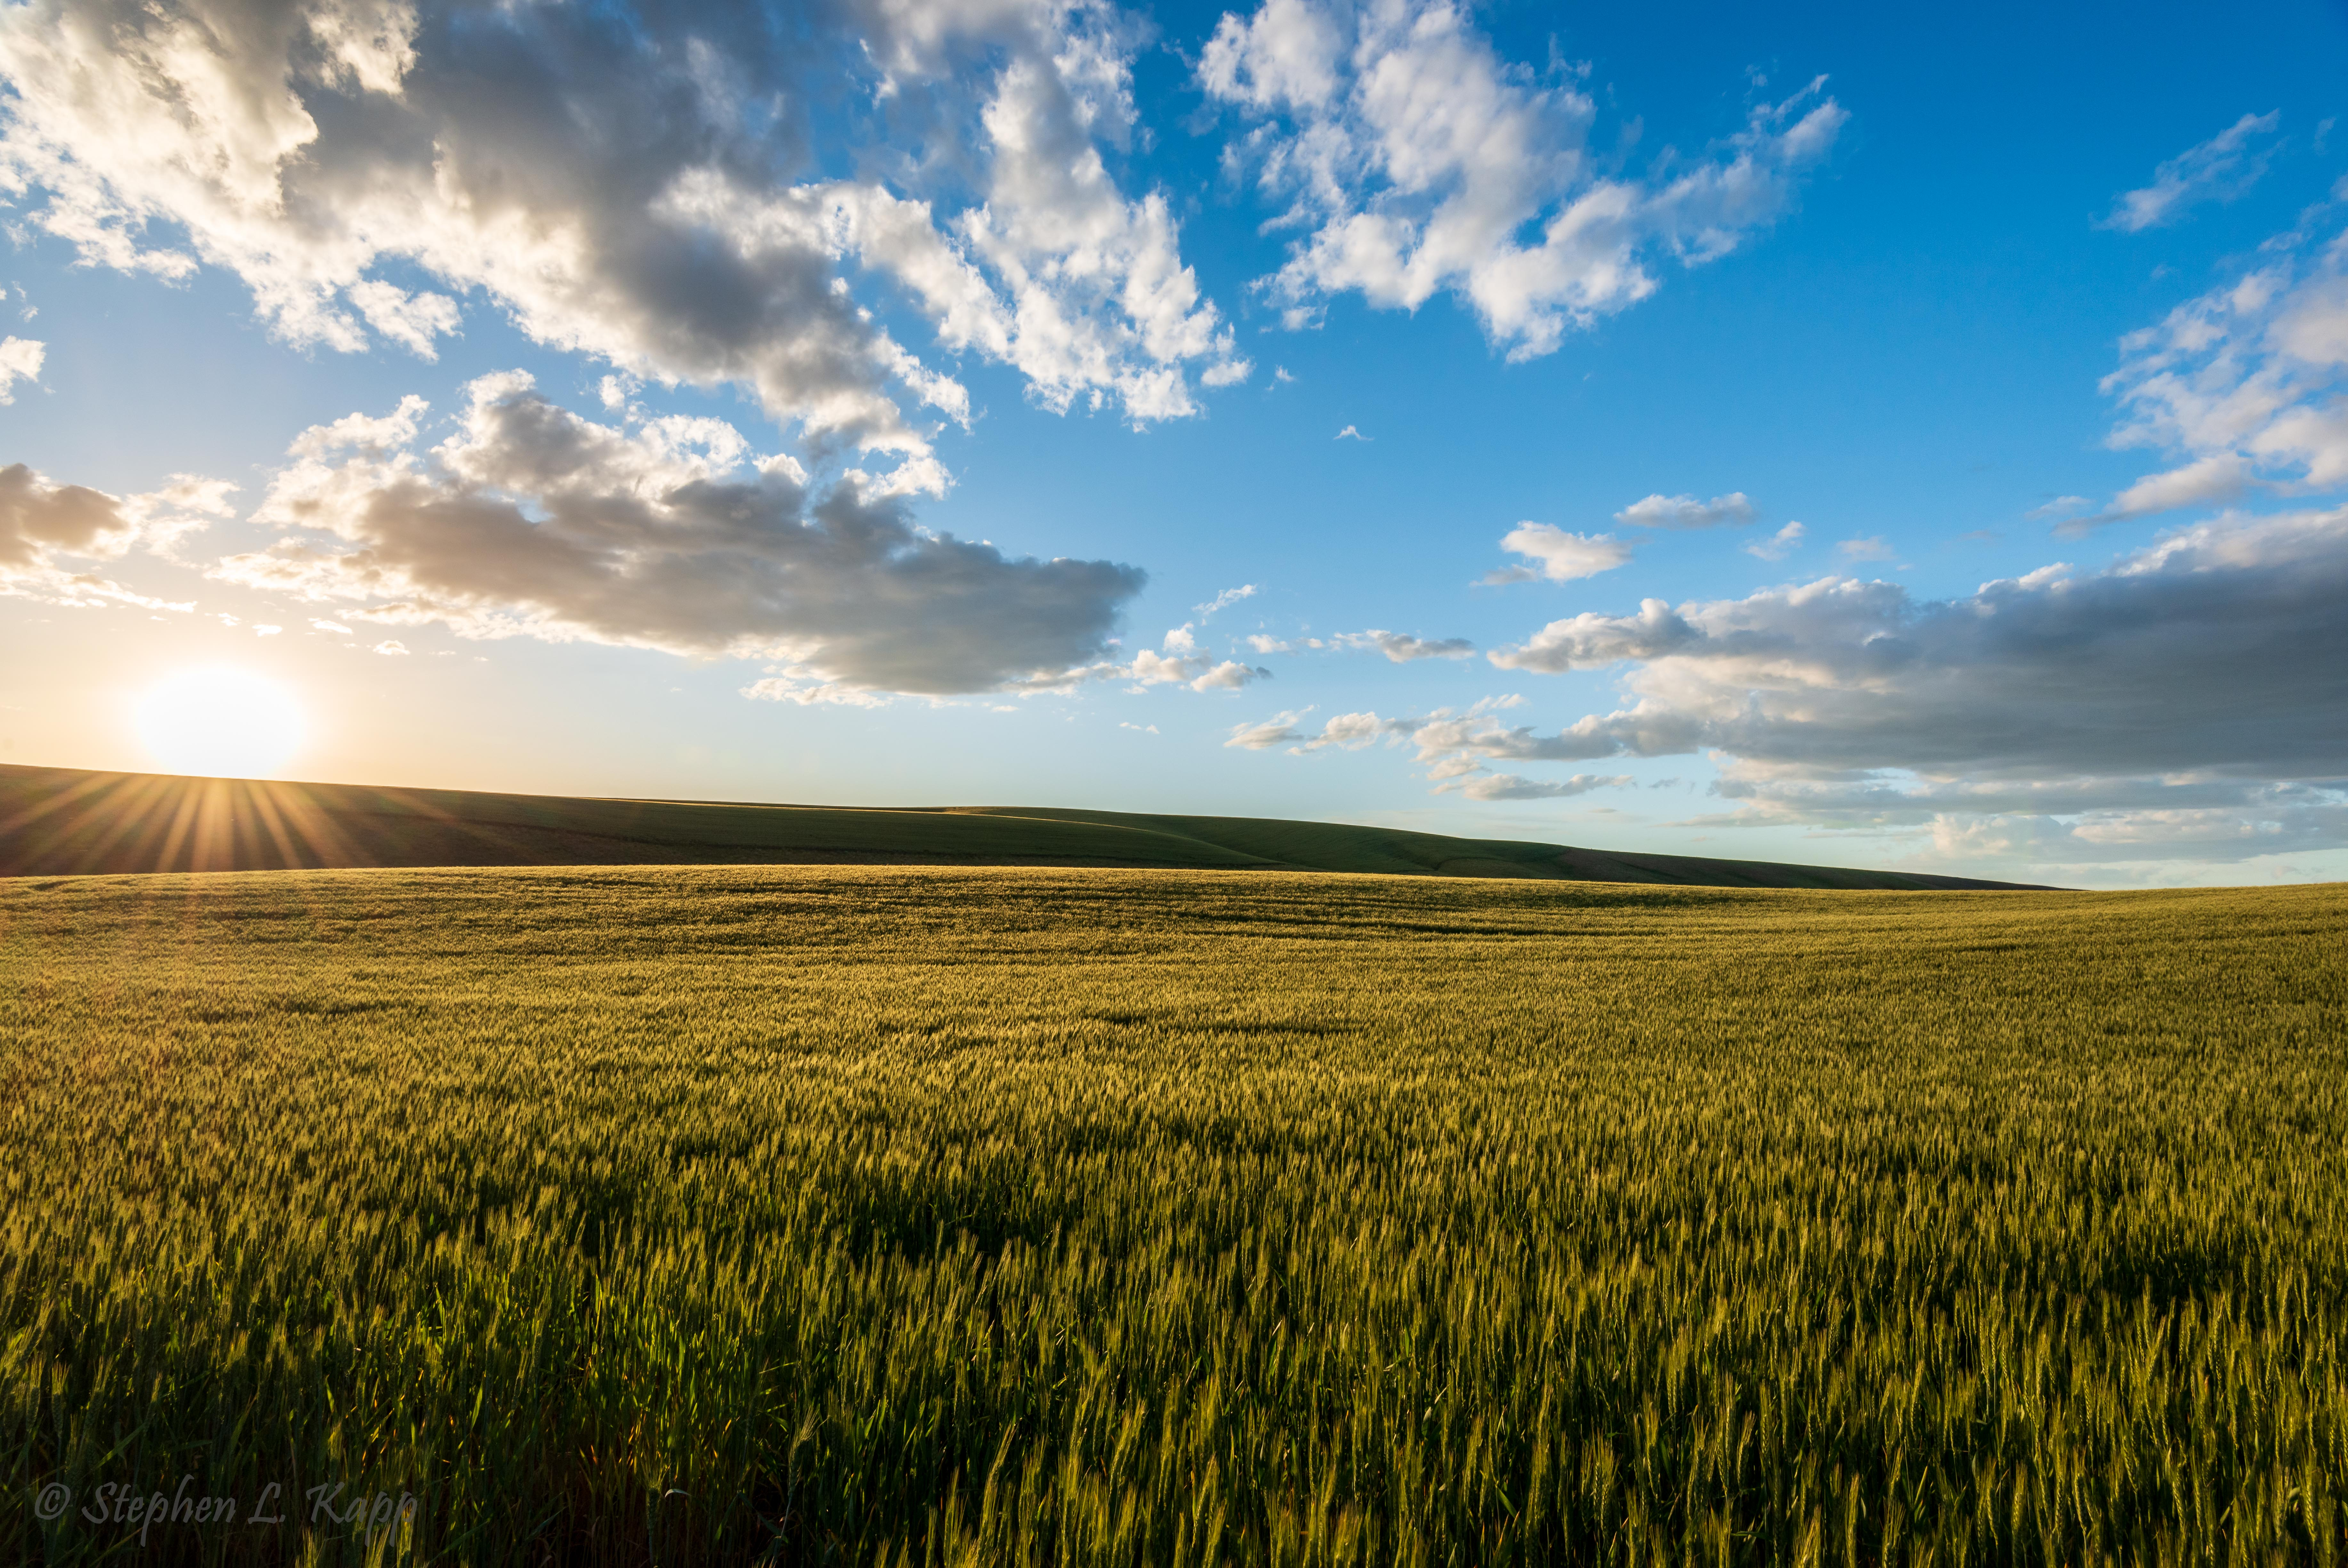 Rolling Wheatfields at the End of the Day